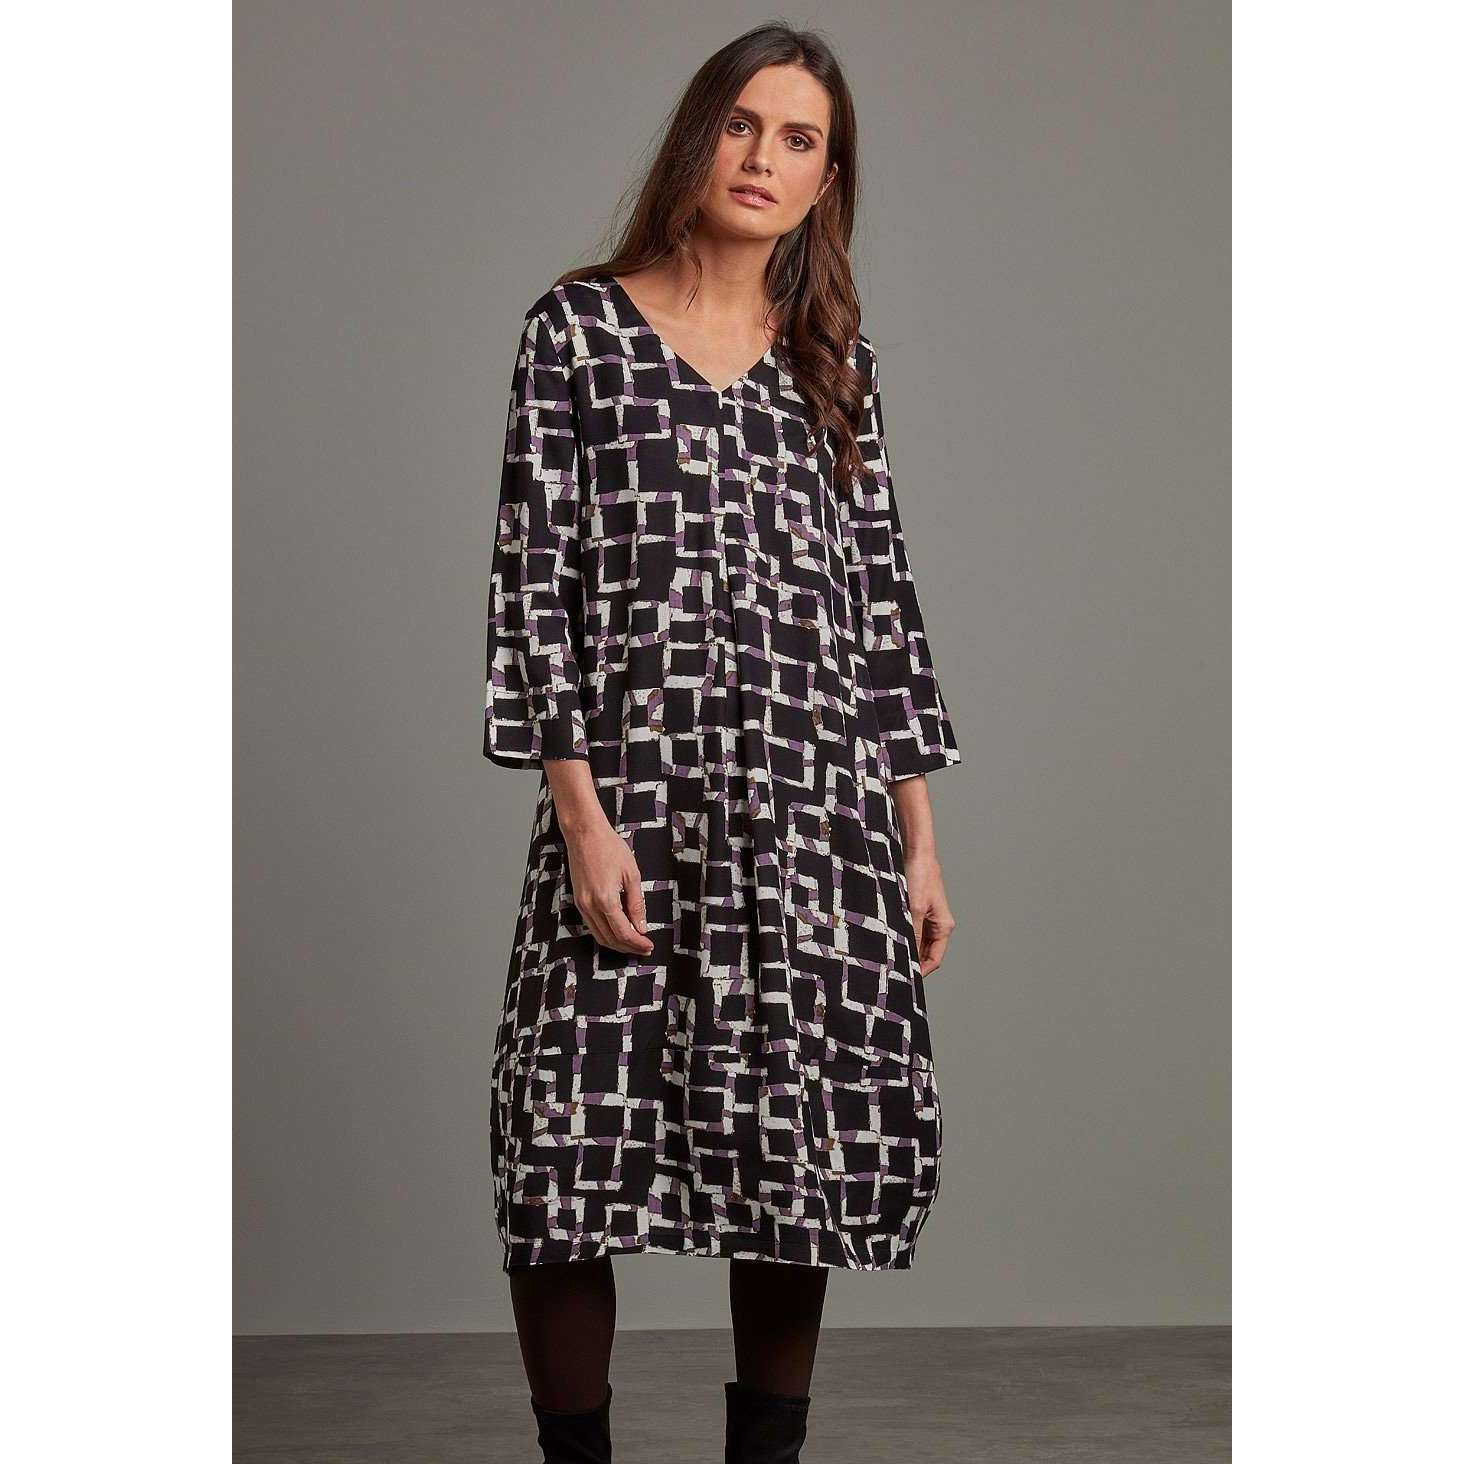 Christa Dress Sloane Print M(14)